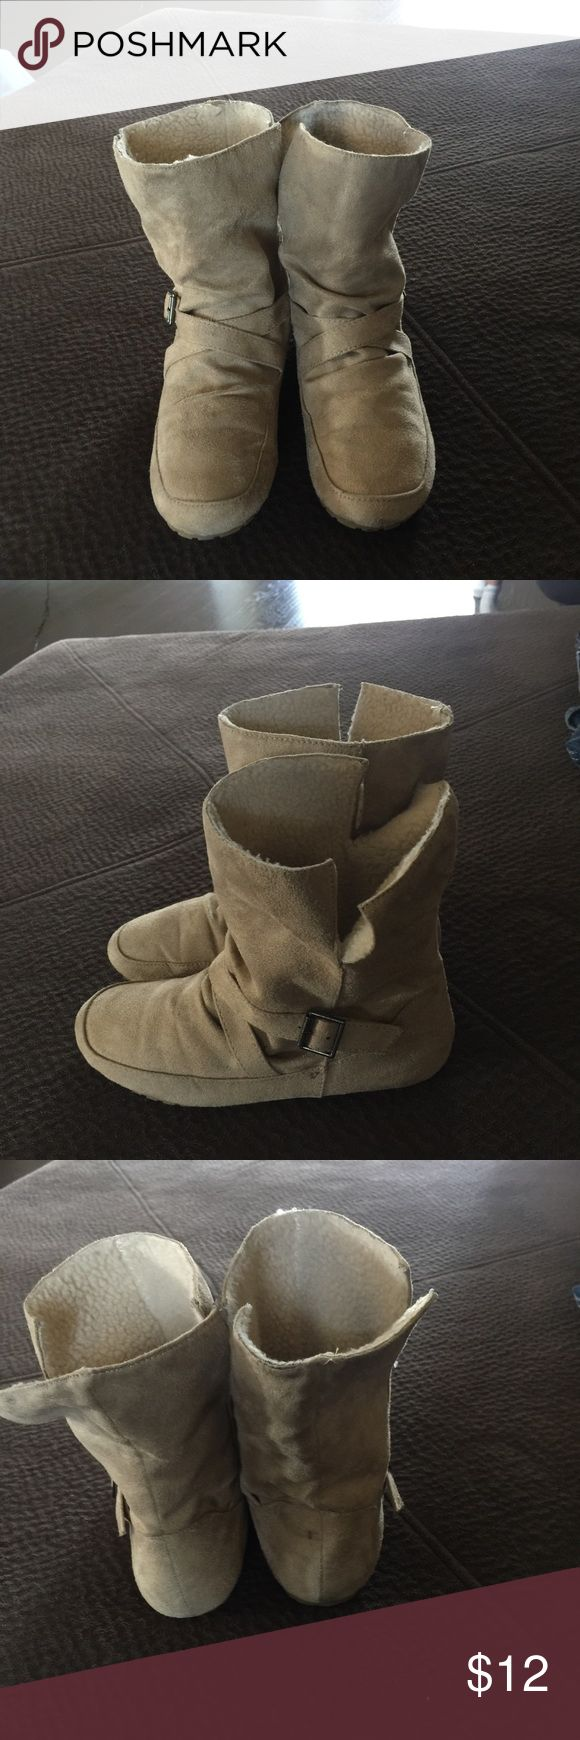 🔴3 FOR $20🔴SHOEDAZZLE MOCCASIN BOOTIE 6.5 VERY CUTE MOCASSIN BOOTIES.  IN EXCELLENT CONDITION.  A LITTLE STAIN IN BACK OF BOOTIE AS SEEN IN PIC AND A LITTLE IN THE WOOL SHEPARD PART.  💖THANK YOU FOR THE LIKE!  BIG DEALS!  EVERYTHING UNDER $10 is 4 FOR $10!  EVERYTHING UNDER $20 IS 4 FOR $20!  PLEASE FEEL FREE TO ASK ANY QUESTIONS! 💖 Shoe Dazzle Shoes Ankle Boots & Booties